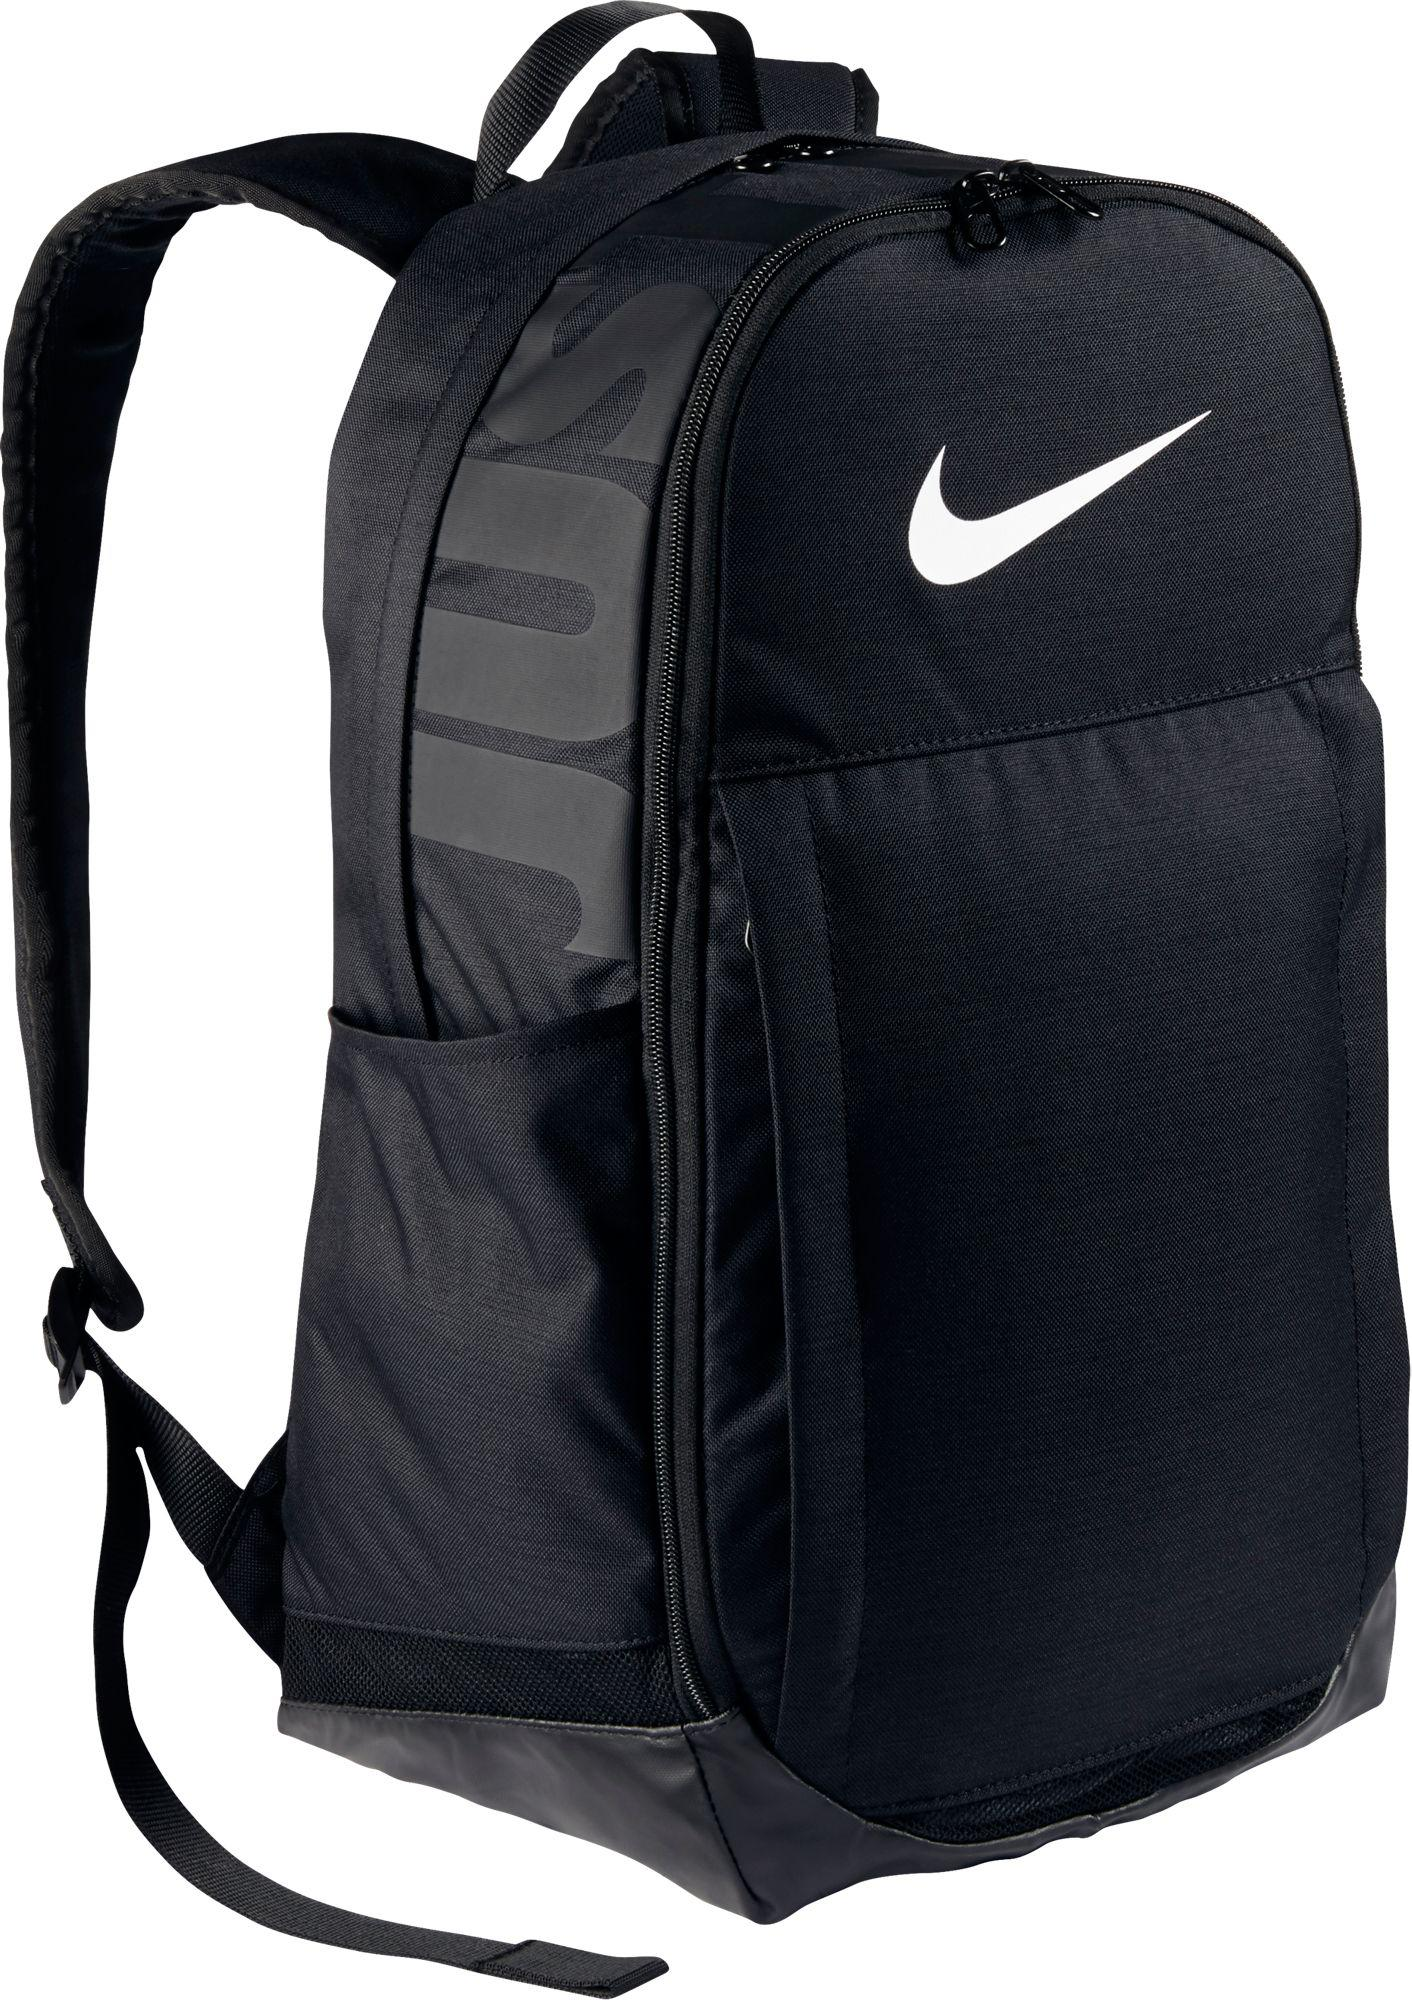 3767b6f7f2e1 Lyst - Nike Rasilia Xl Training Backpack in Black for Men